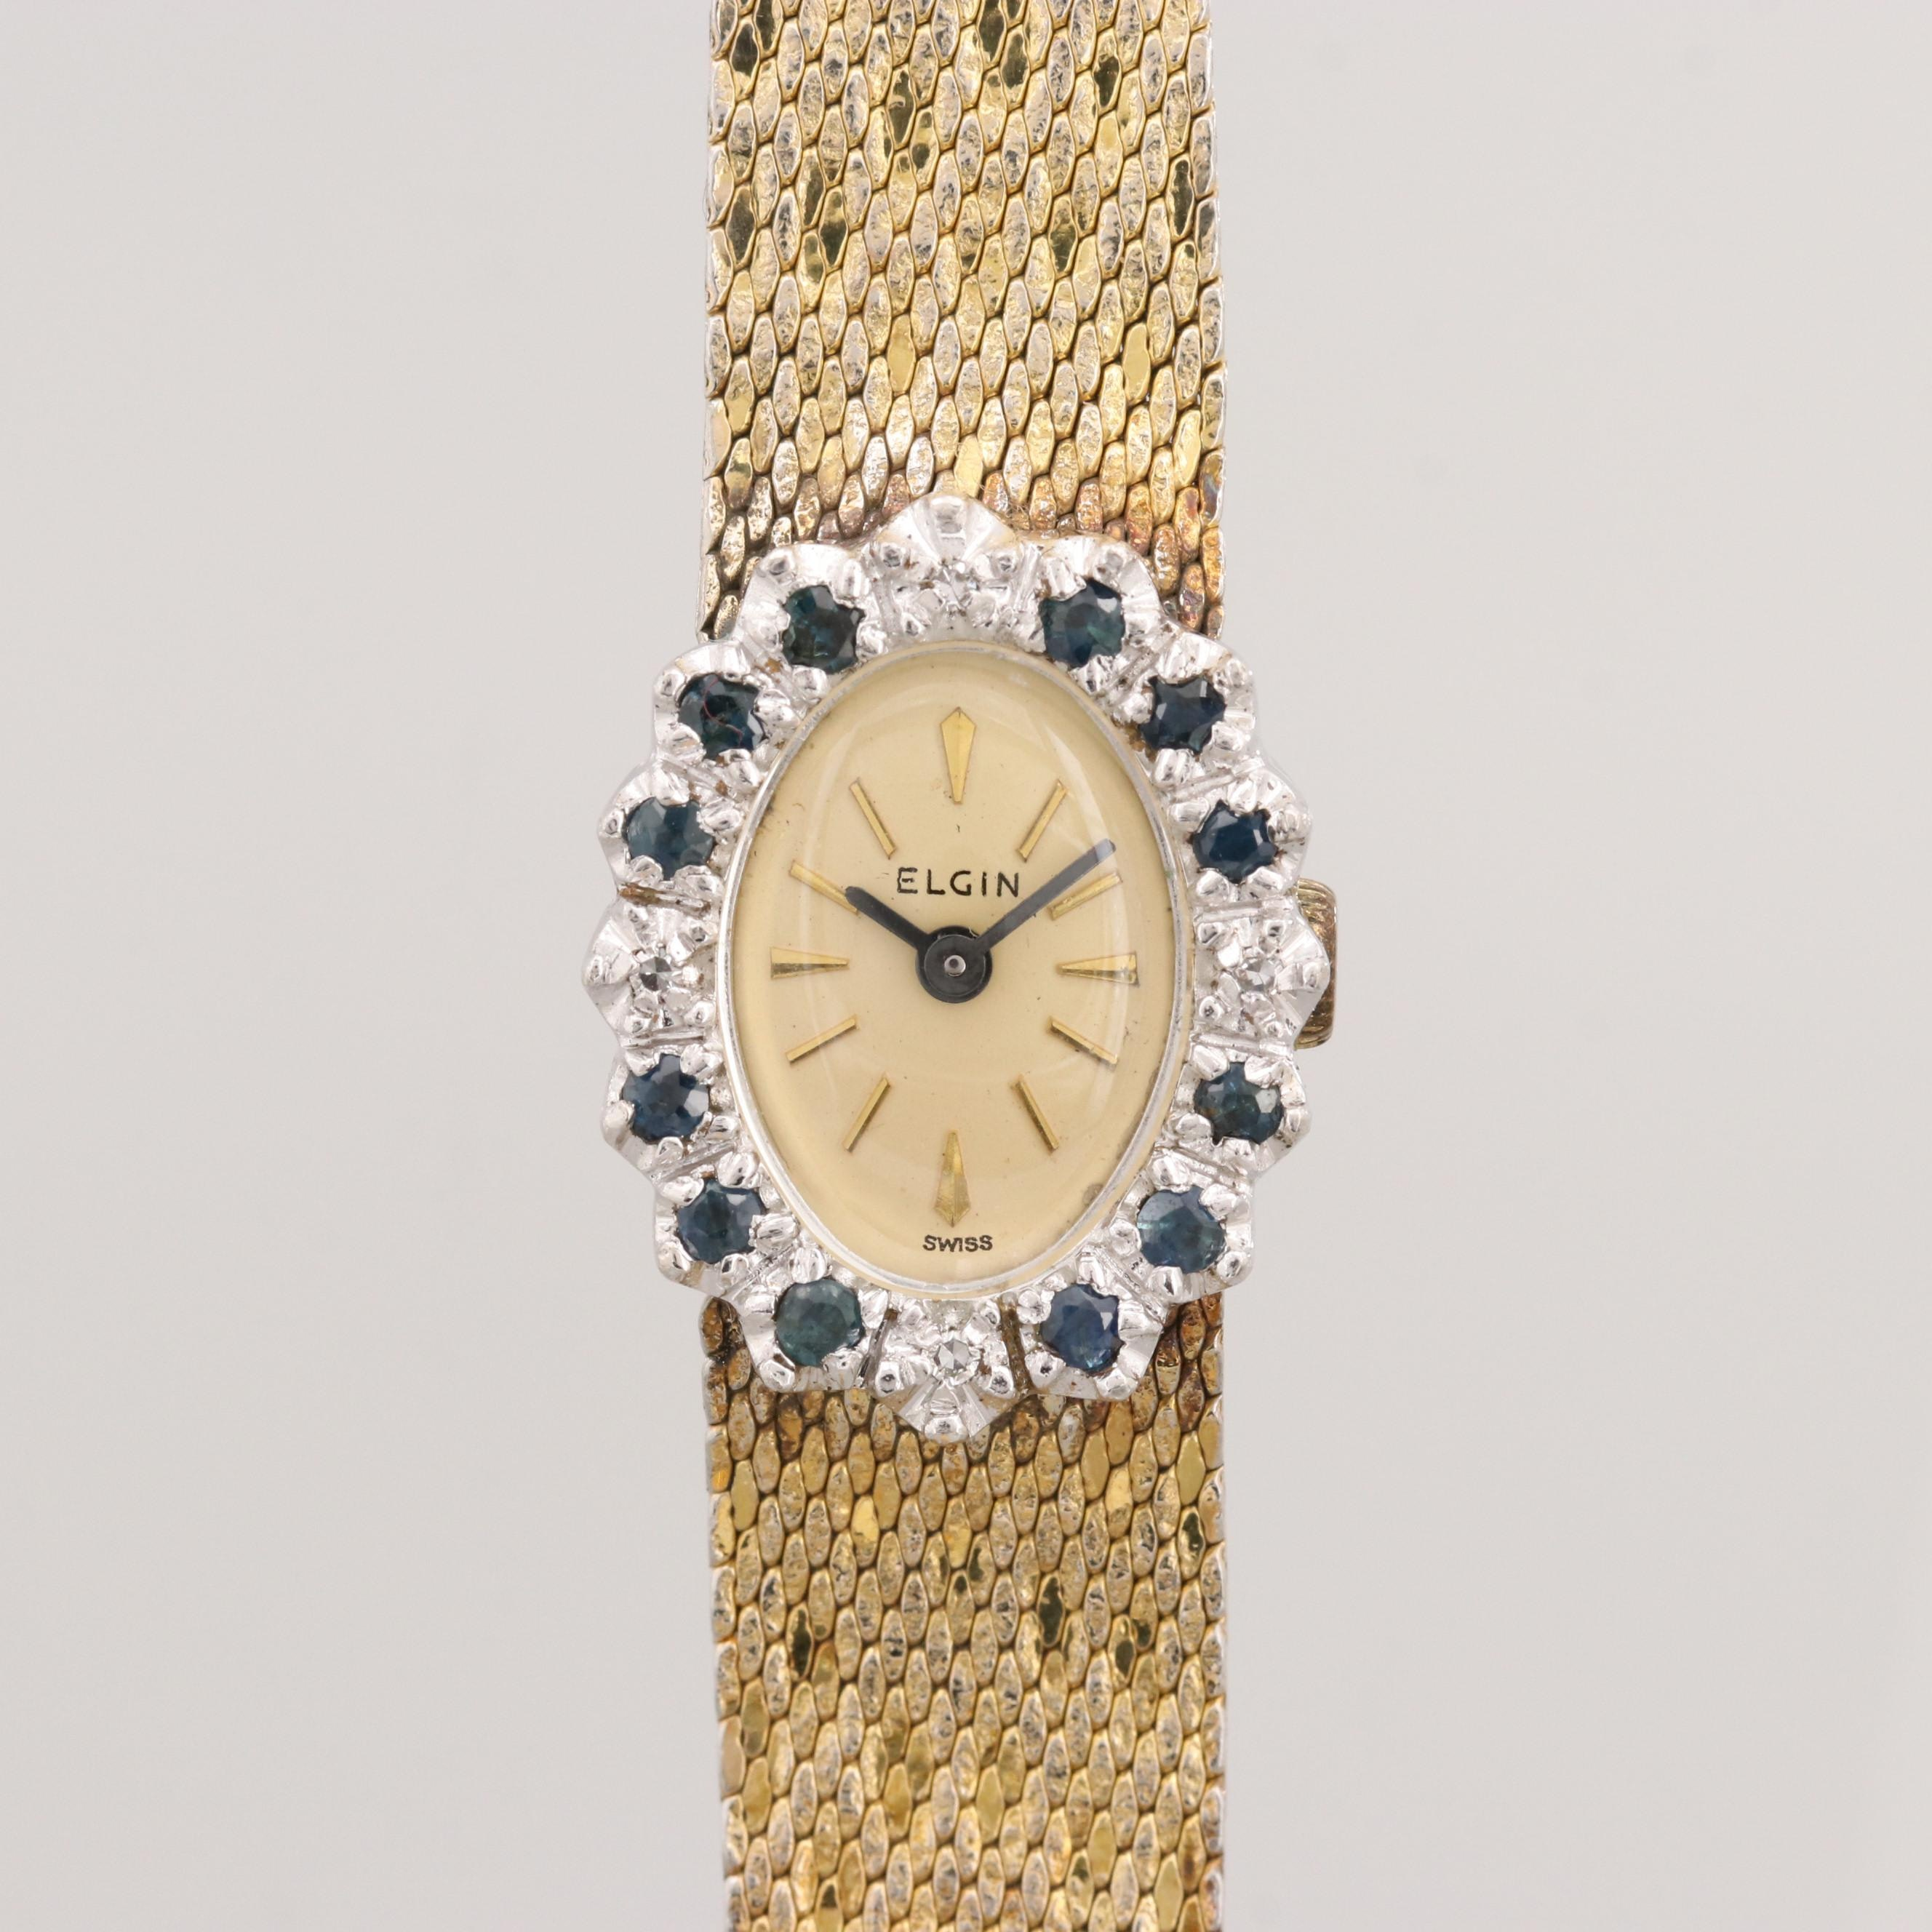 Vintage Elgin Gold Filled Stem Wind Wristwatch With Diamond and Sapphire Bezel